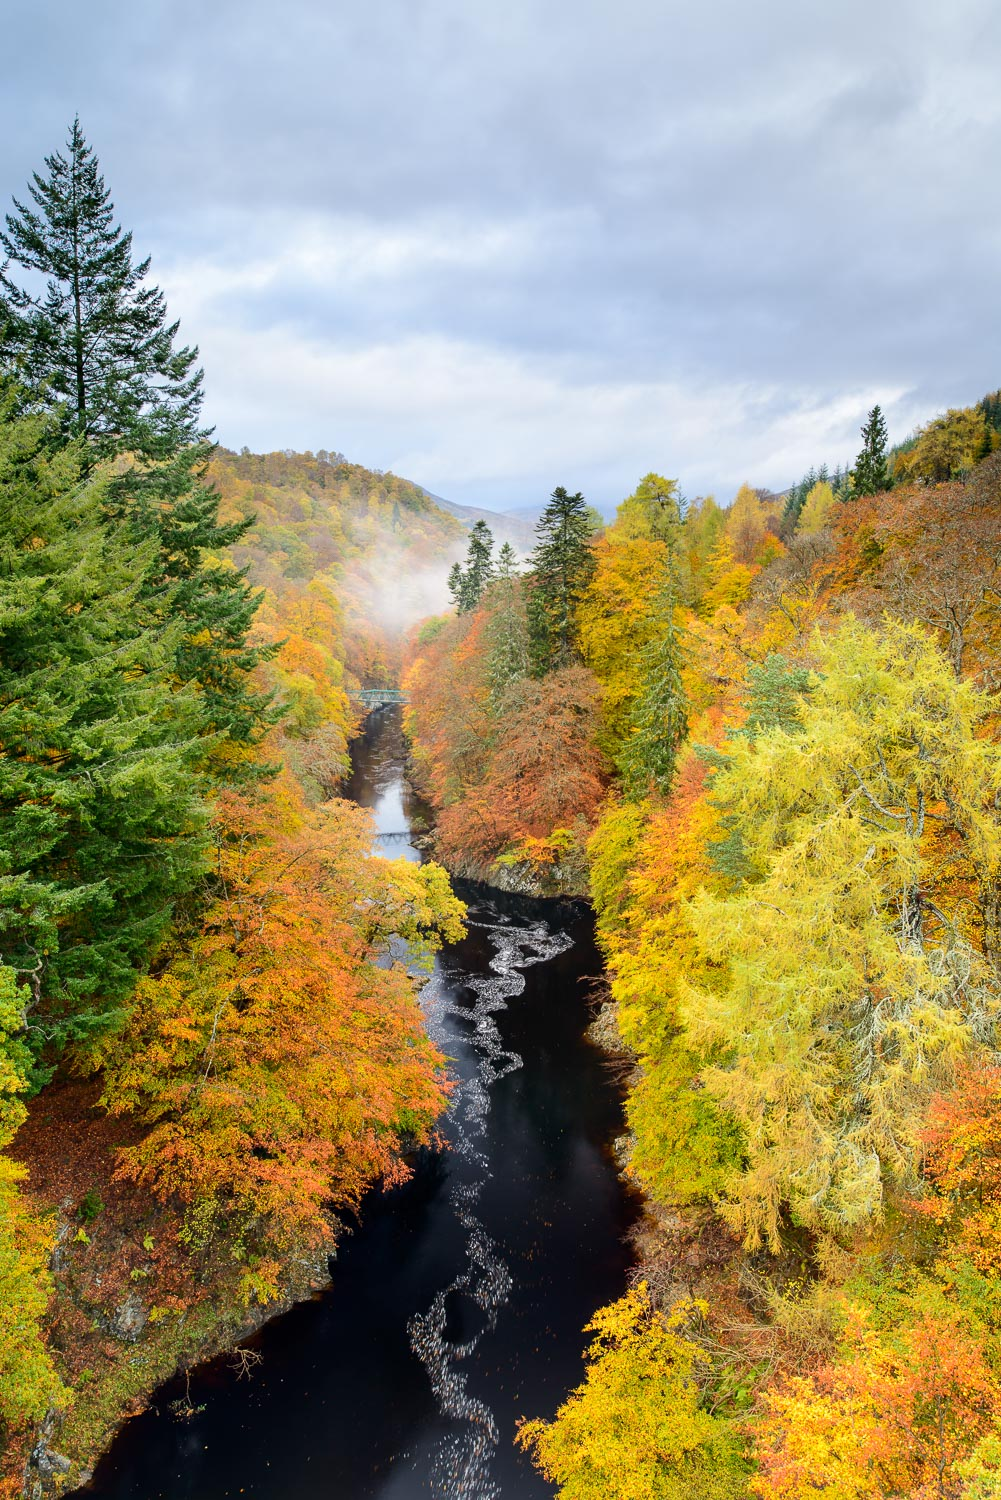 Killiecrankie Gorge